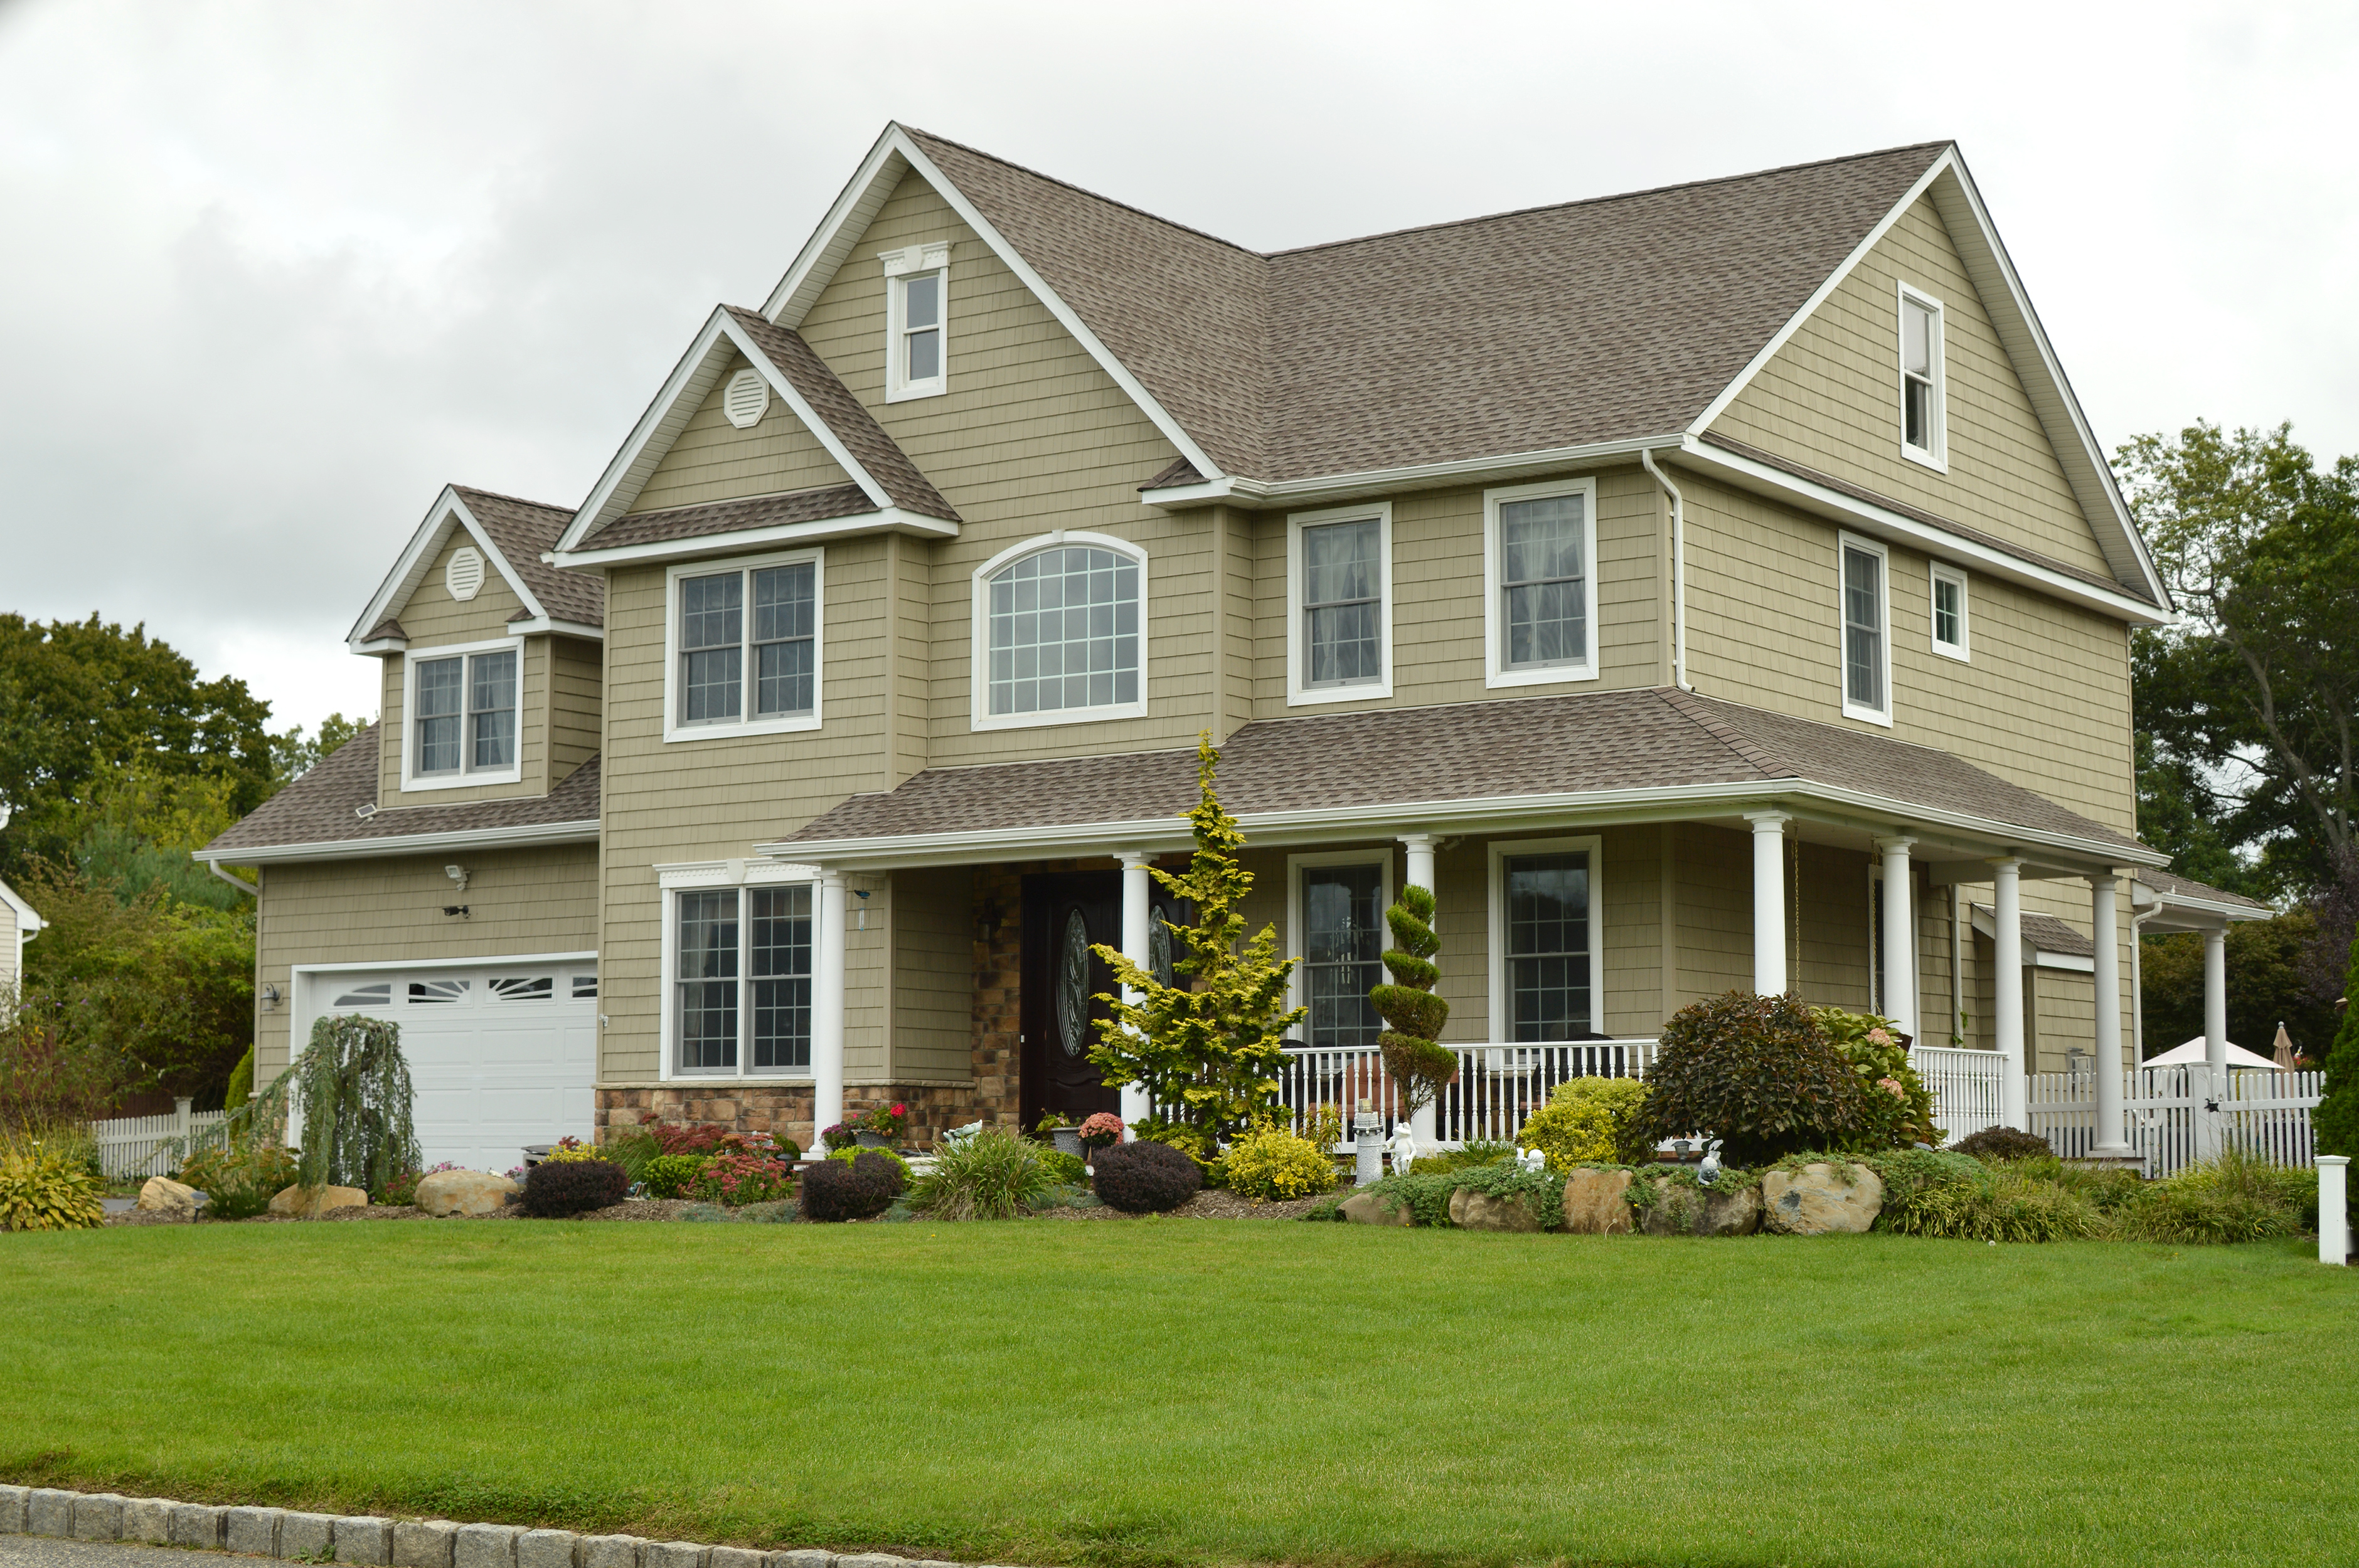 An olive two-story house with a covered patio and white garage sits on a bright green lawn.